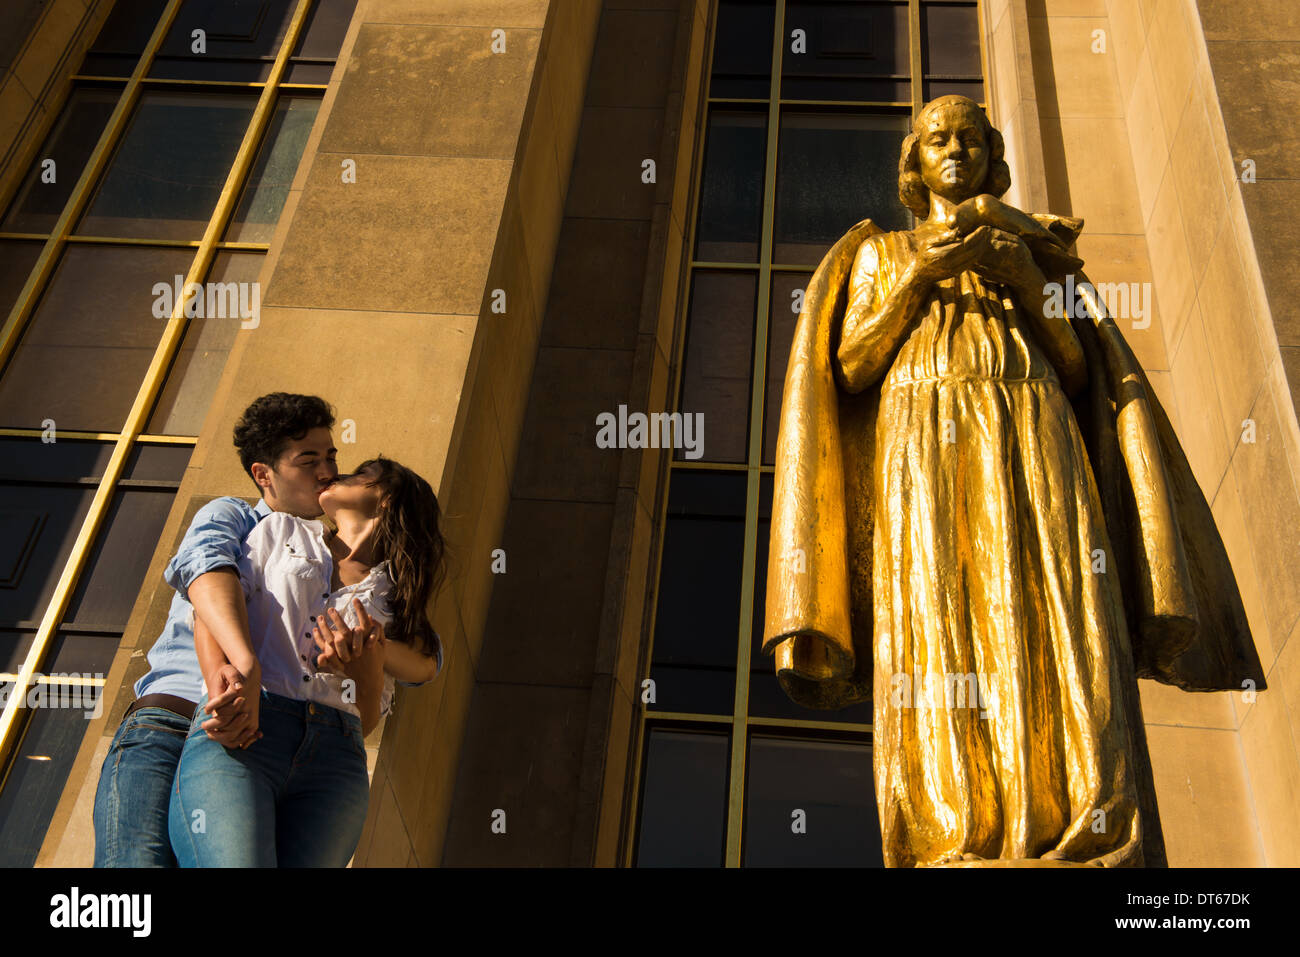 Young couple sharing a kiss next to statue, Paris, France - Stock Image